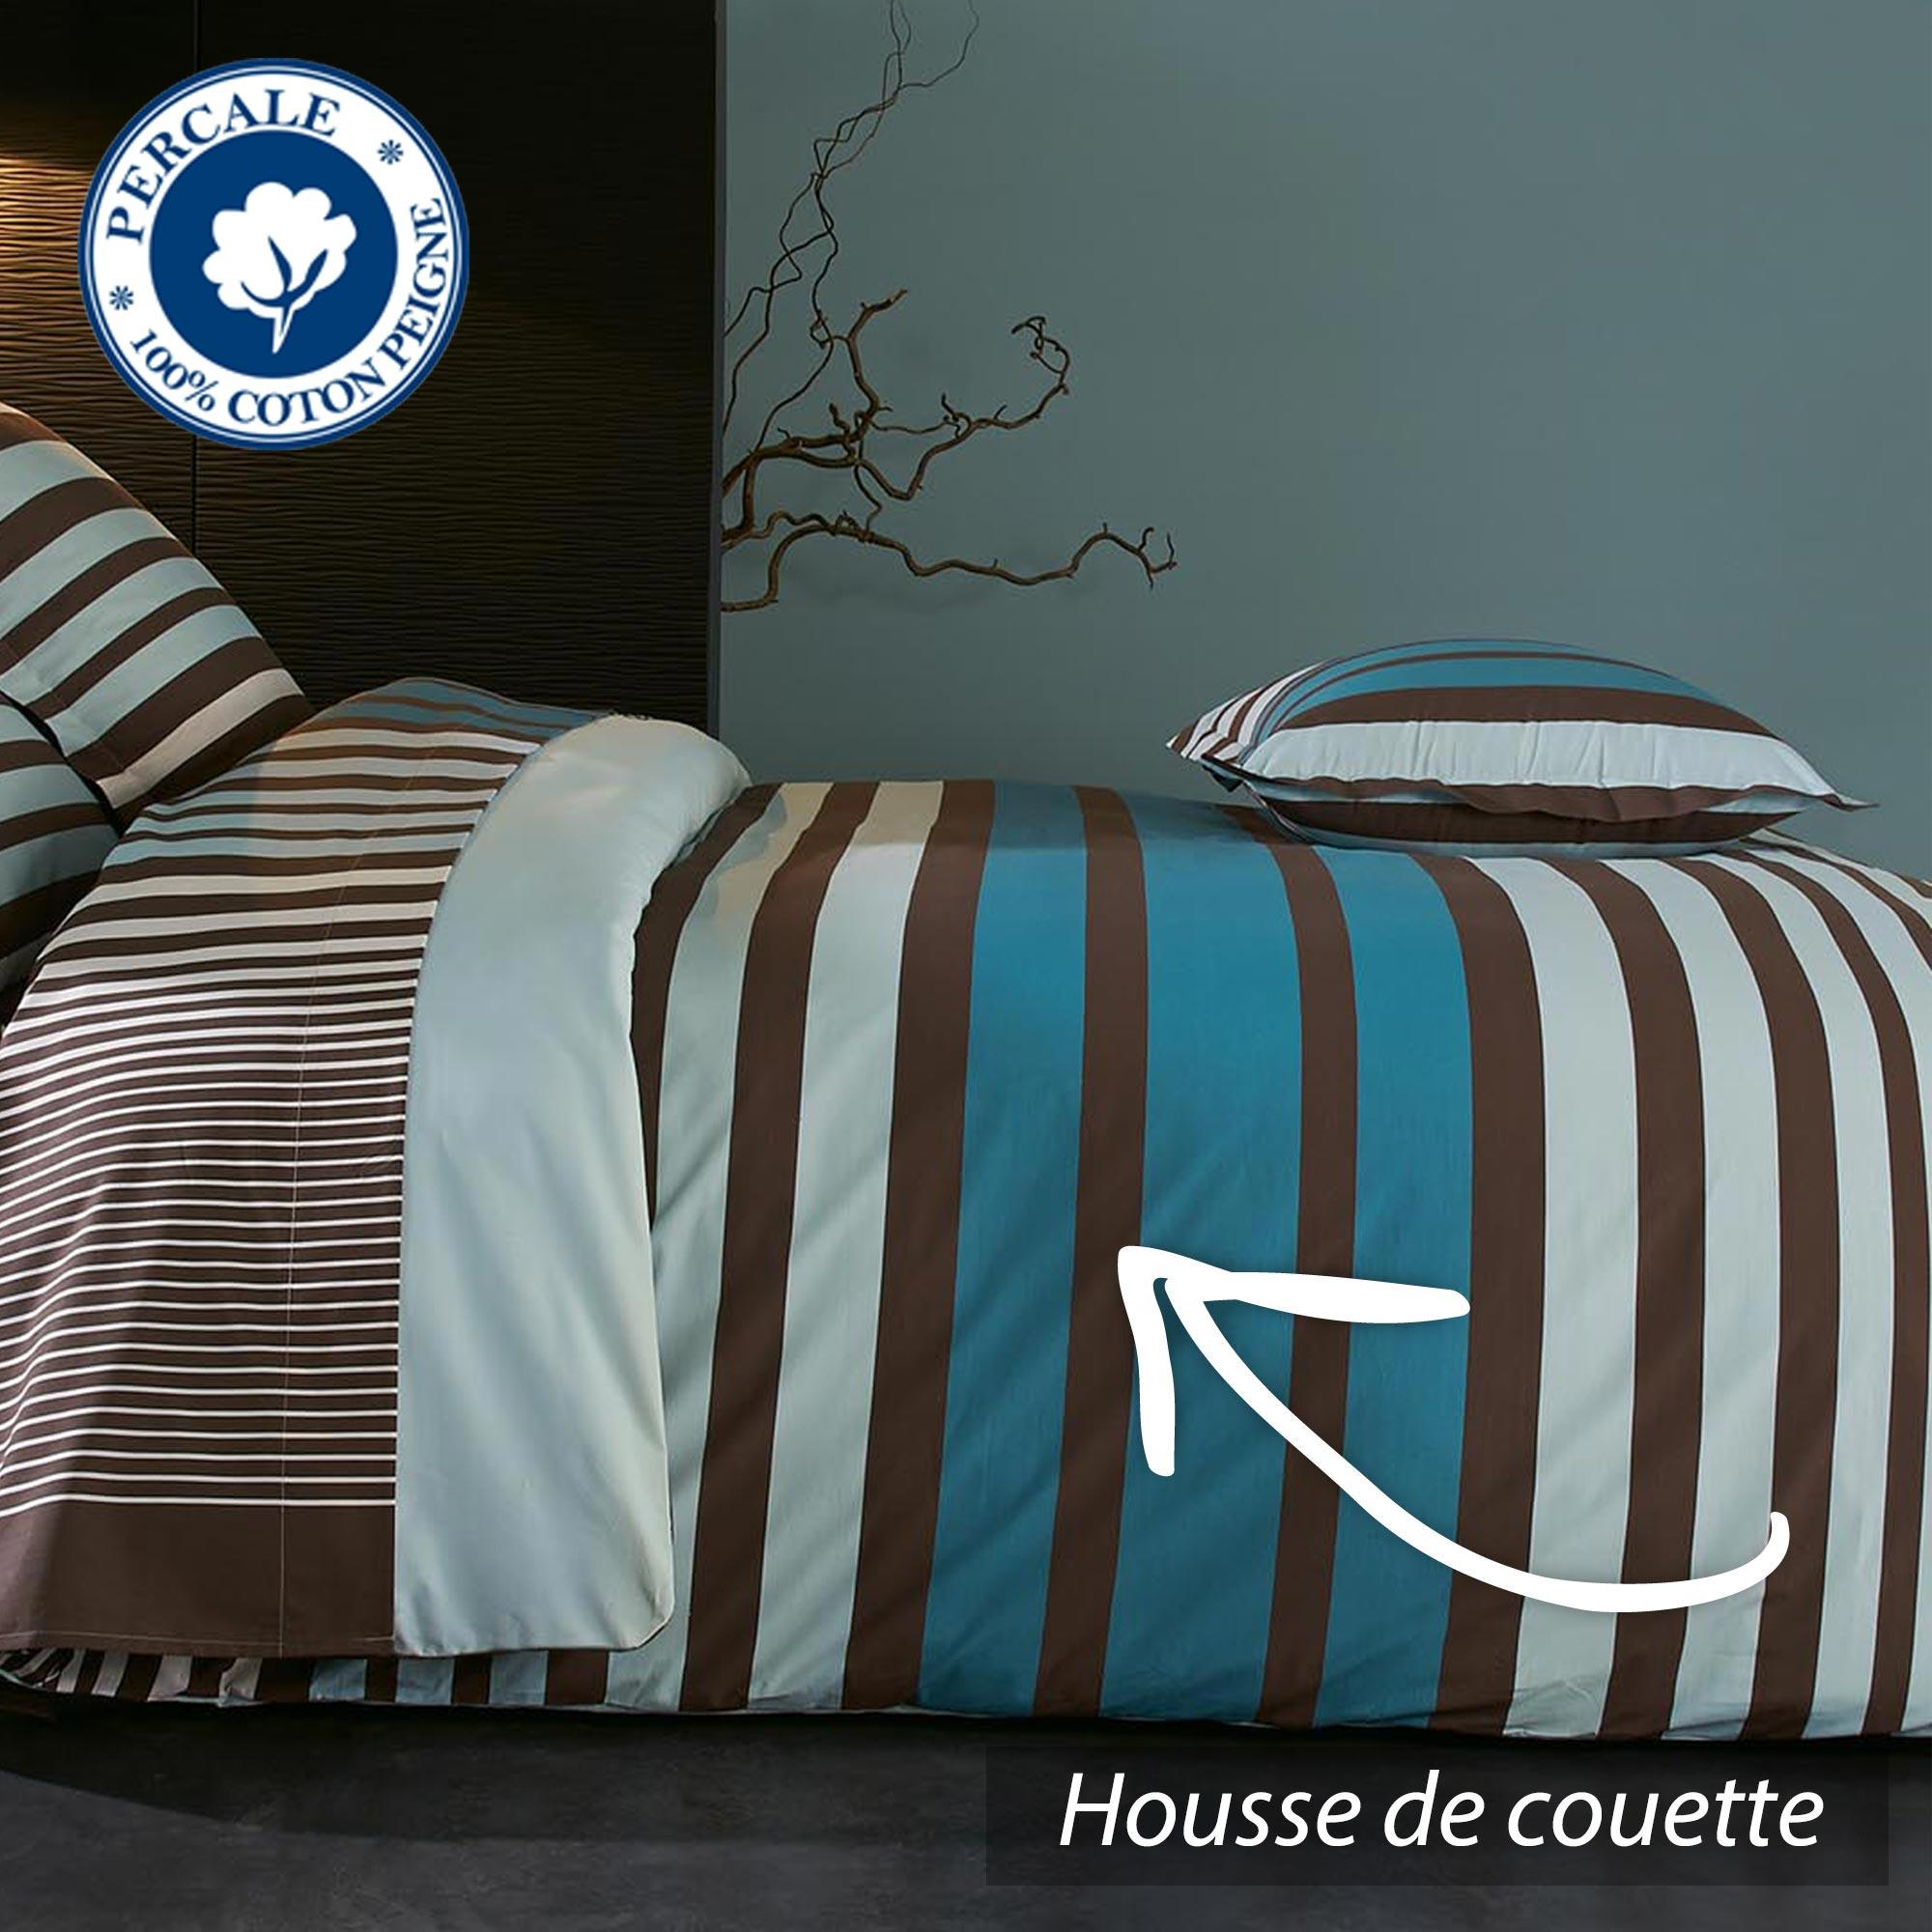 housse de couette percale pur coton peign 240x220 cm stripe bleu linnea vente de linge de maison. Black Bedroom Furniture Sets. Home Design Ideas